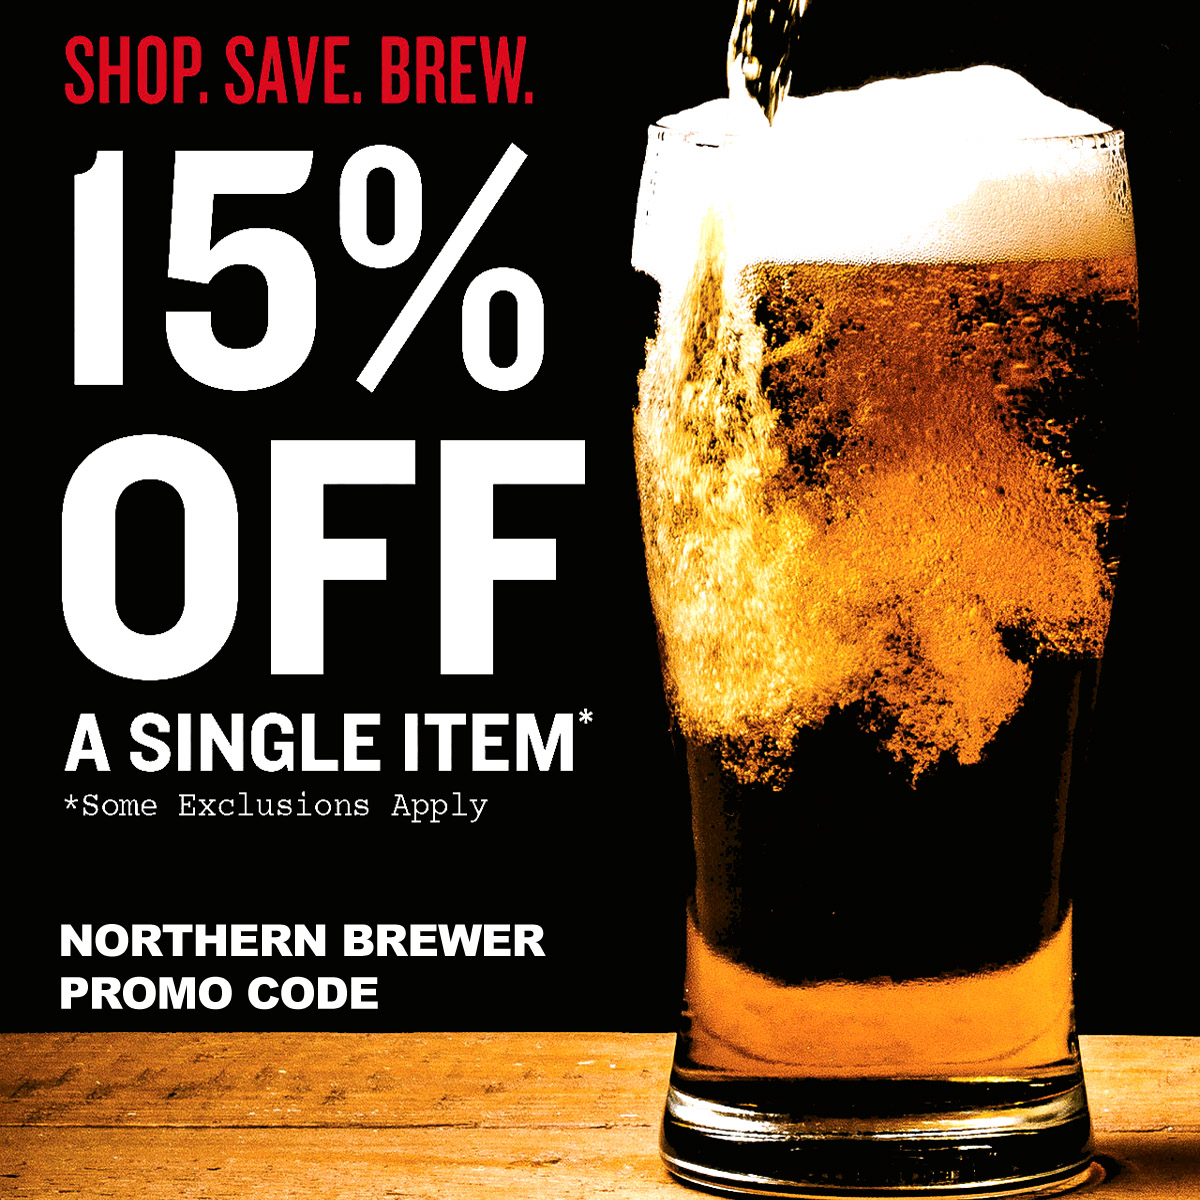 Northern Brewer Use this Northern Brewer promo code and save 15% On A Single Item at Northernbrewer.com Coupon Code